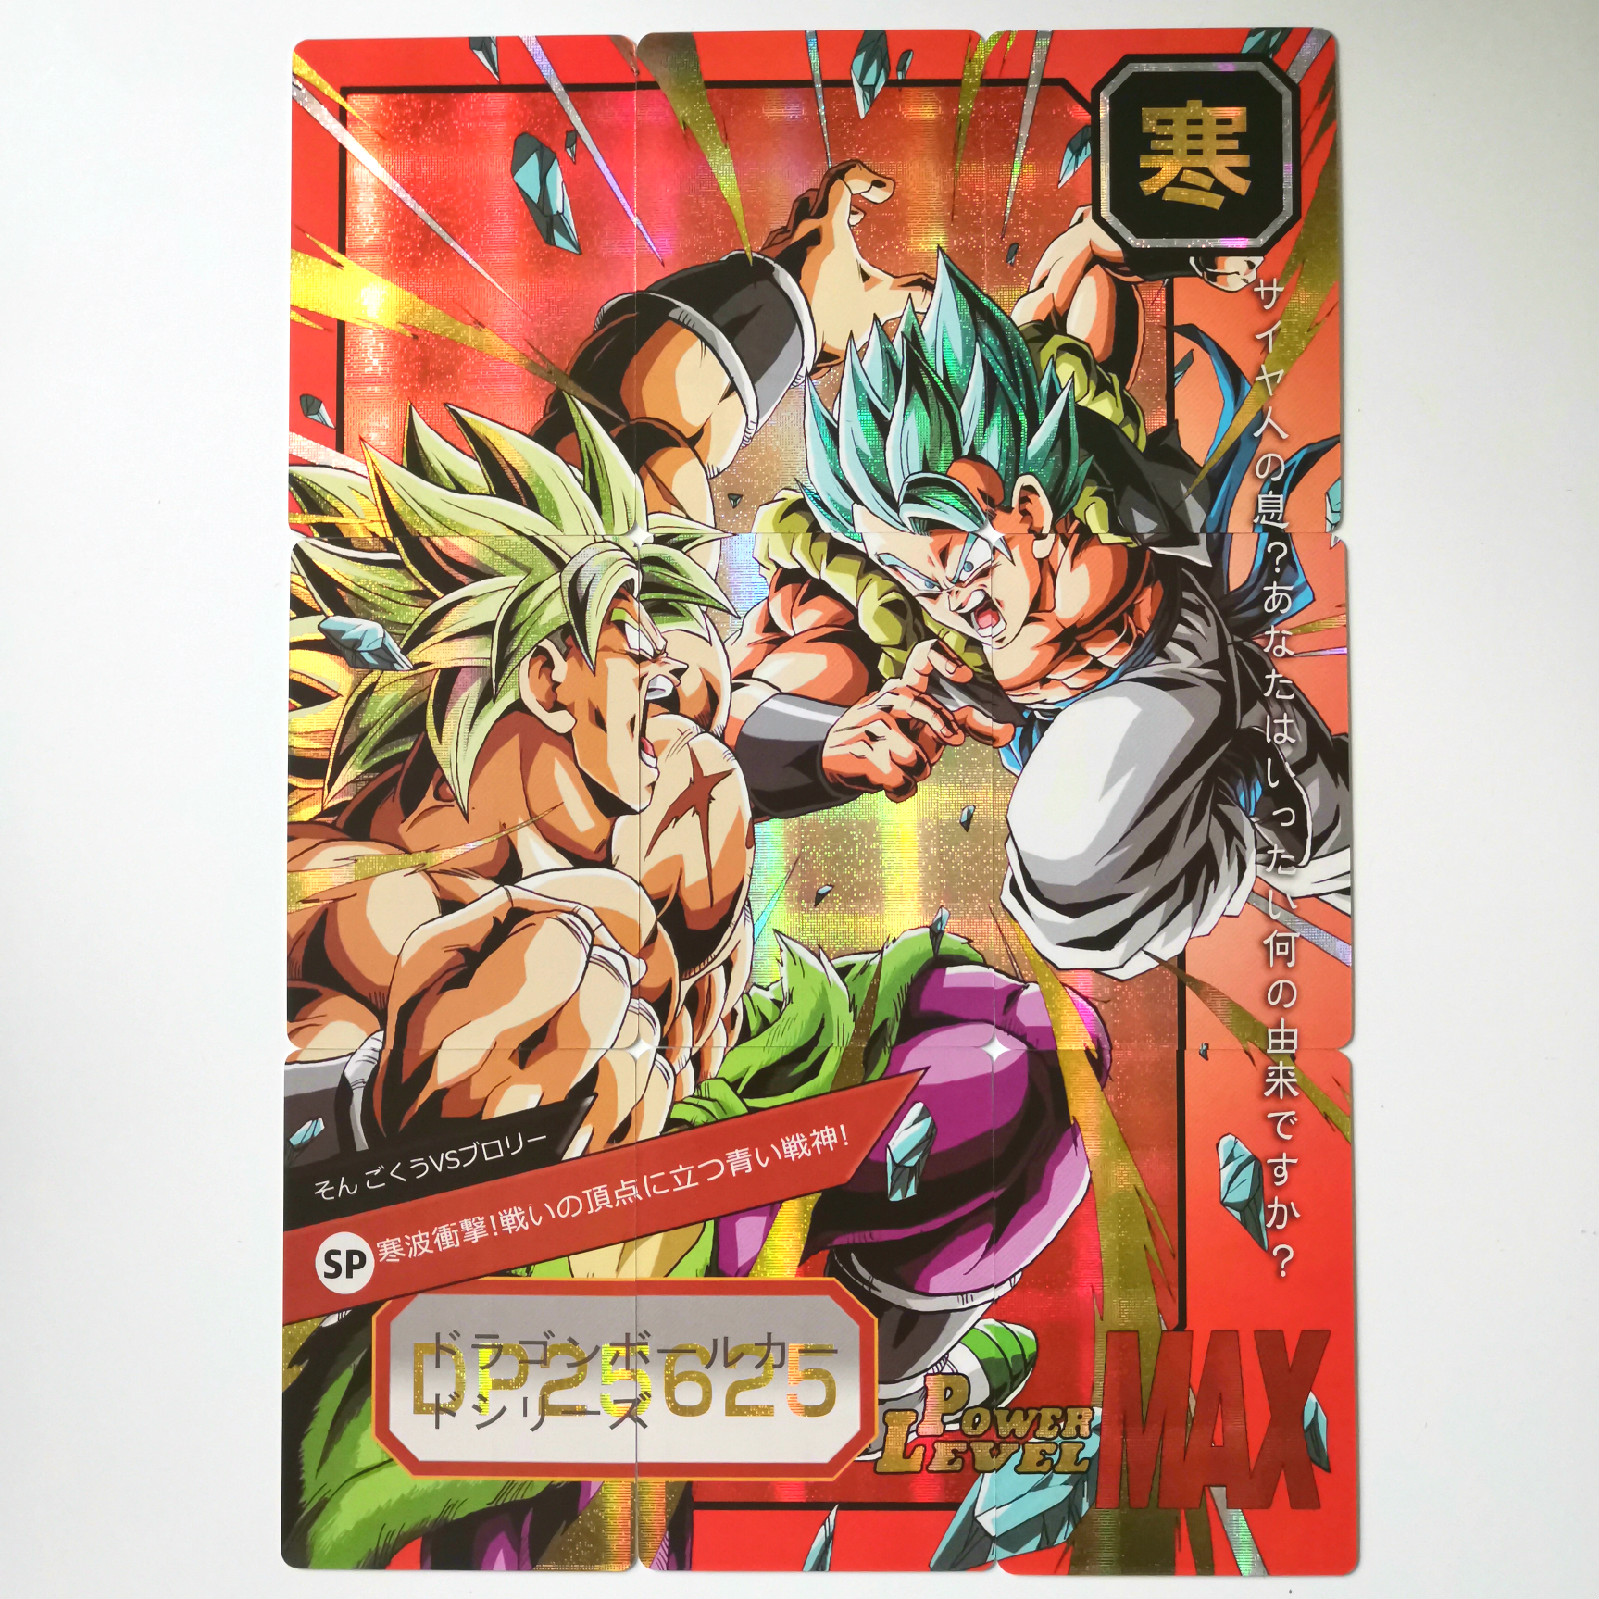 54pcs Super Dragon Ball Z 6 Sets 9 In 1 Heroes Battle Card Ultra Instinct Goku Vegeta Super Game Collection Cards